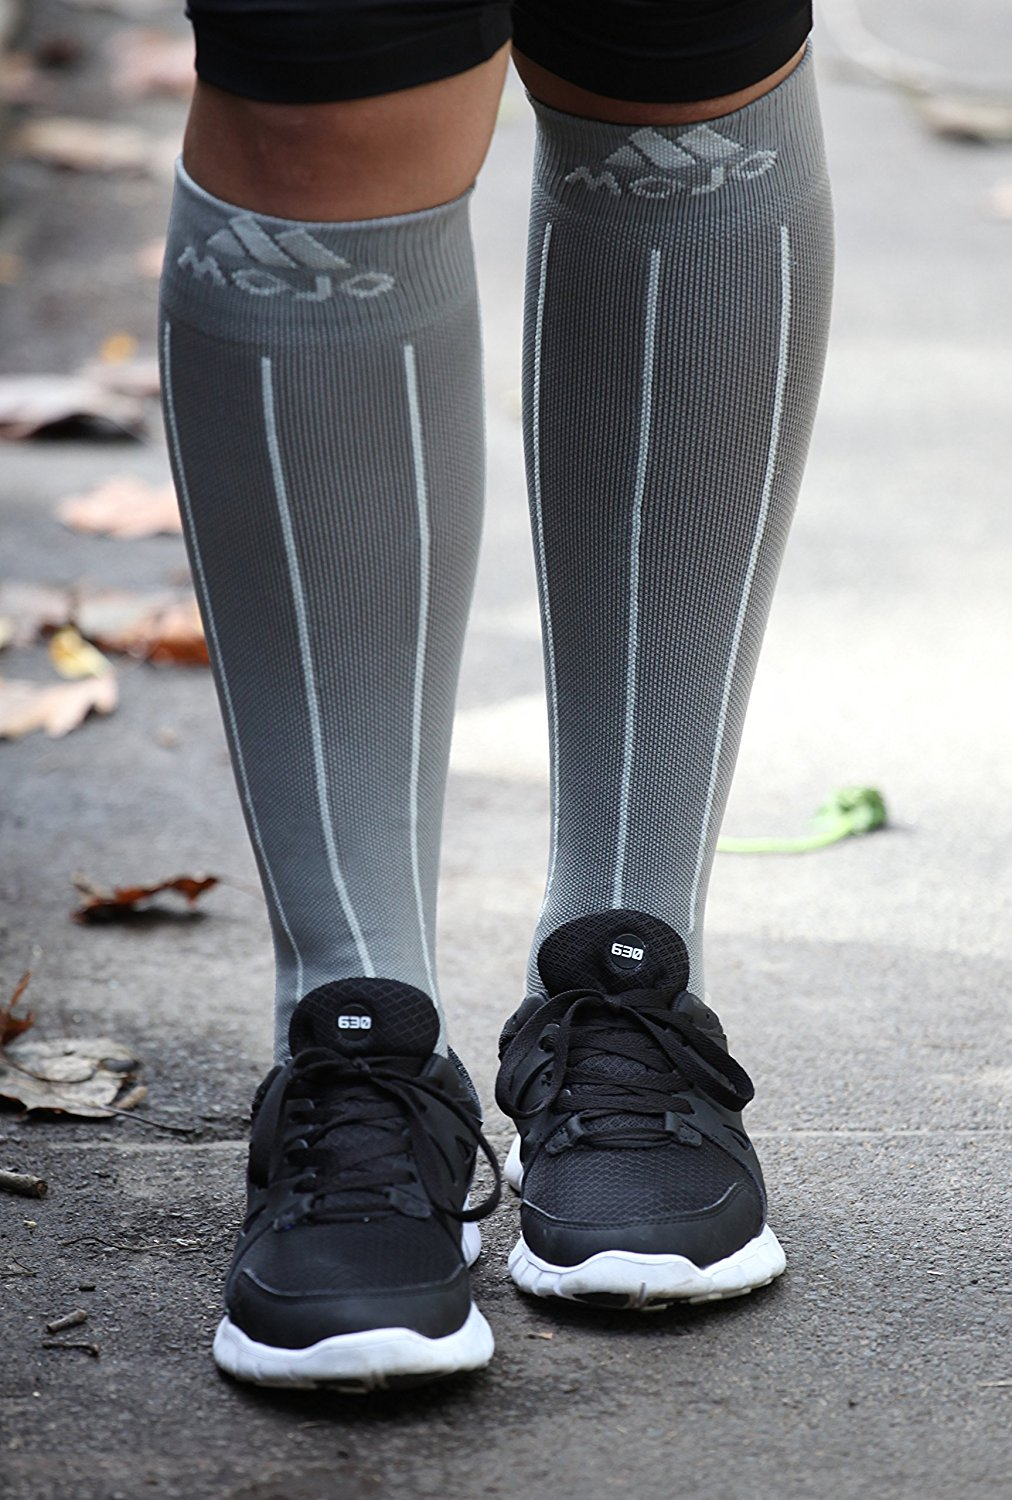 5a5f8892583 Get Quotations · Mojo Grey with Light Grey Stripes 20-30mmHg Knee High  Compression Socks - Moisture Wicking